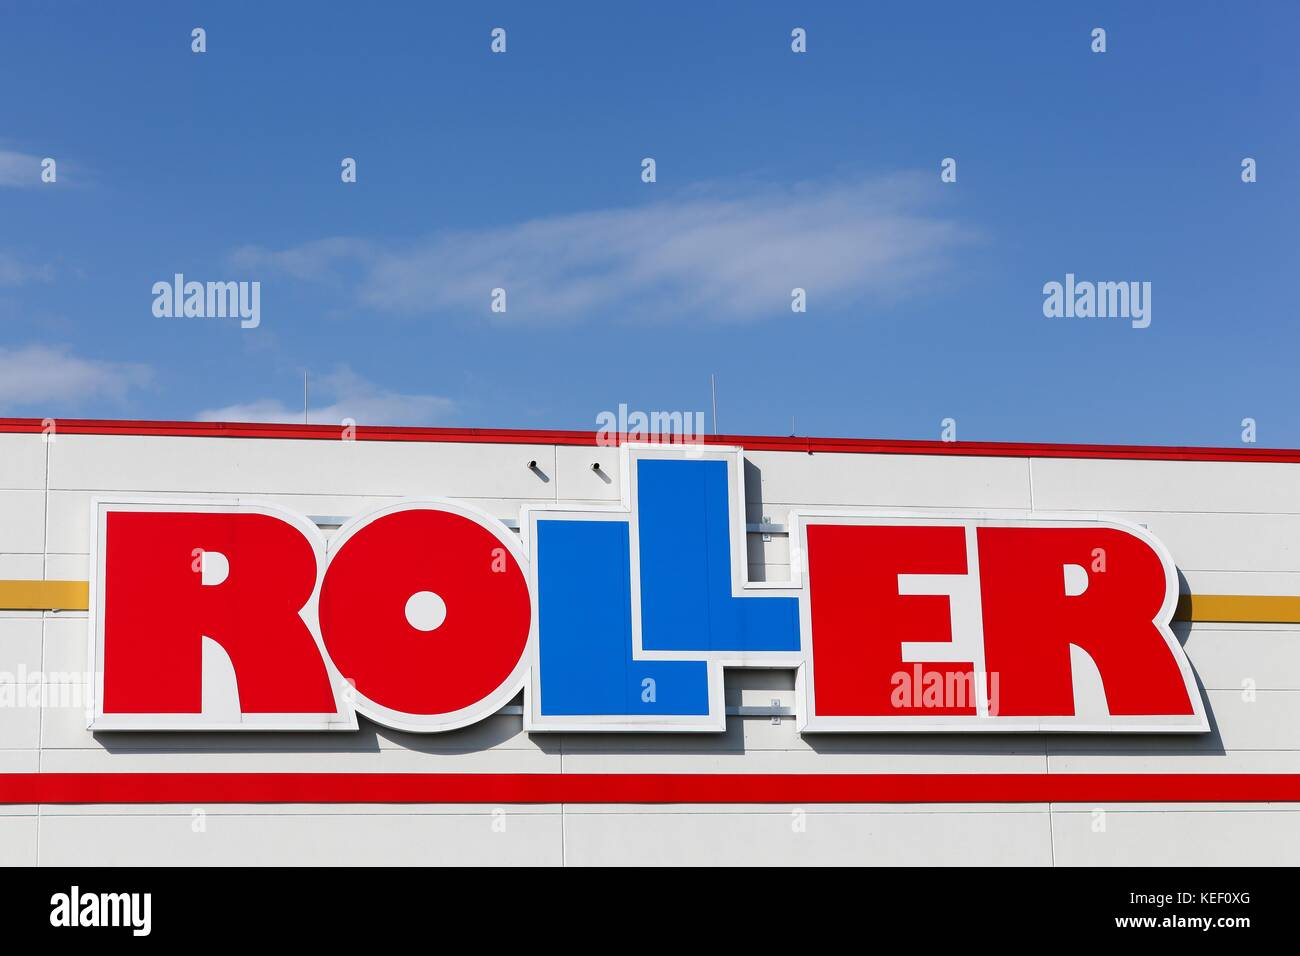 Roller Based Stock Photos Roller Based Stock Images Alamy